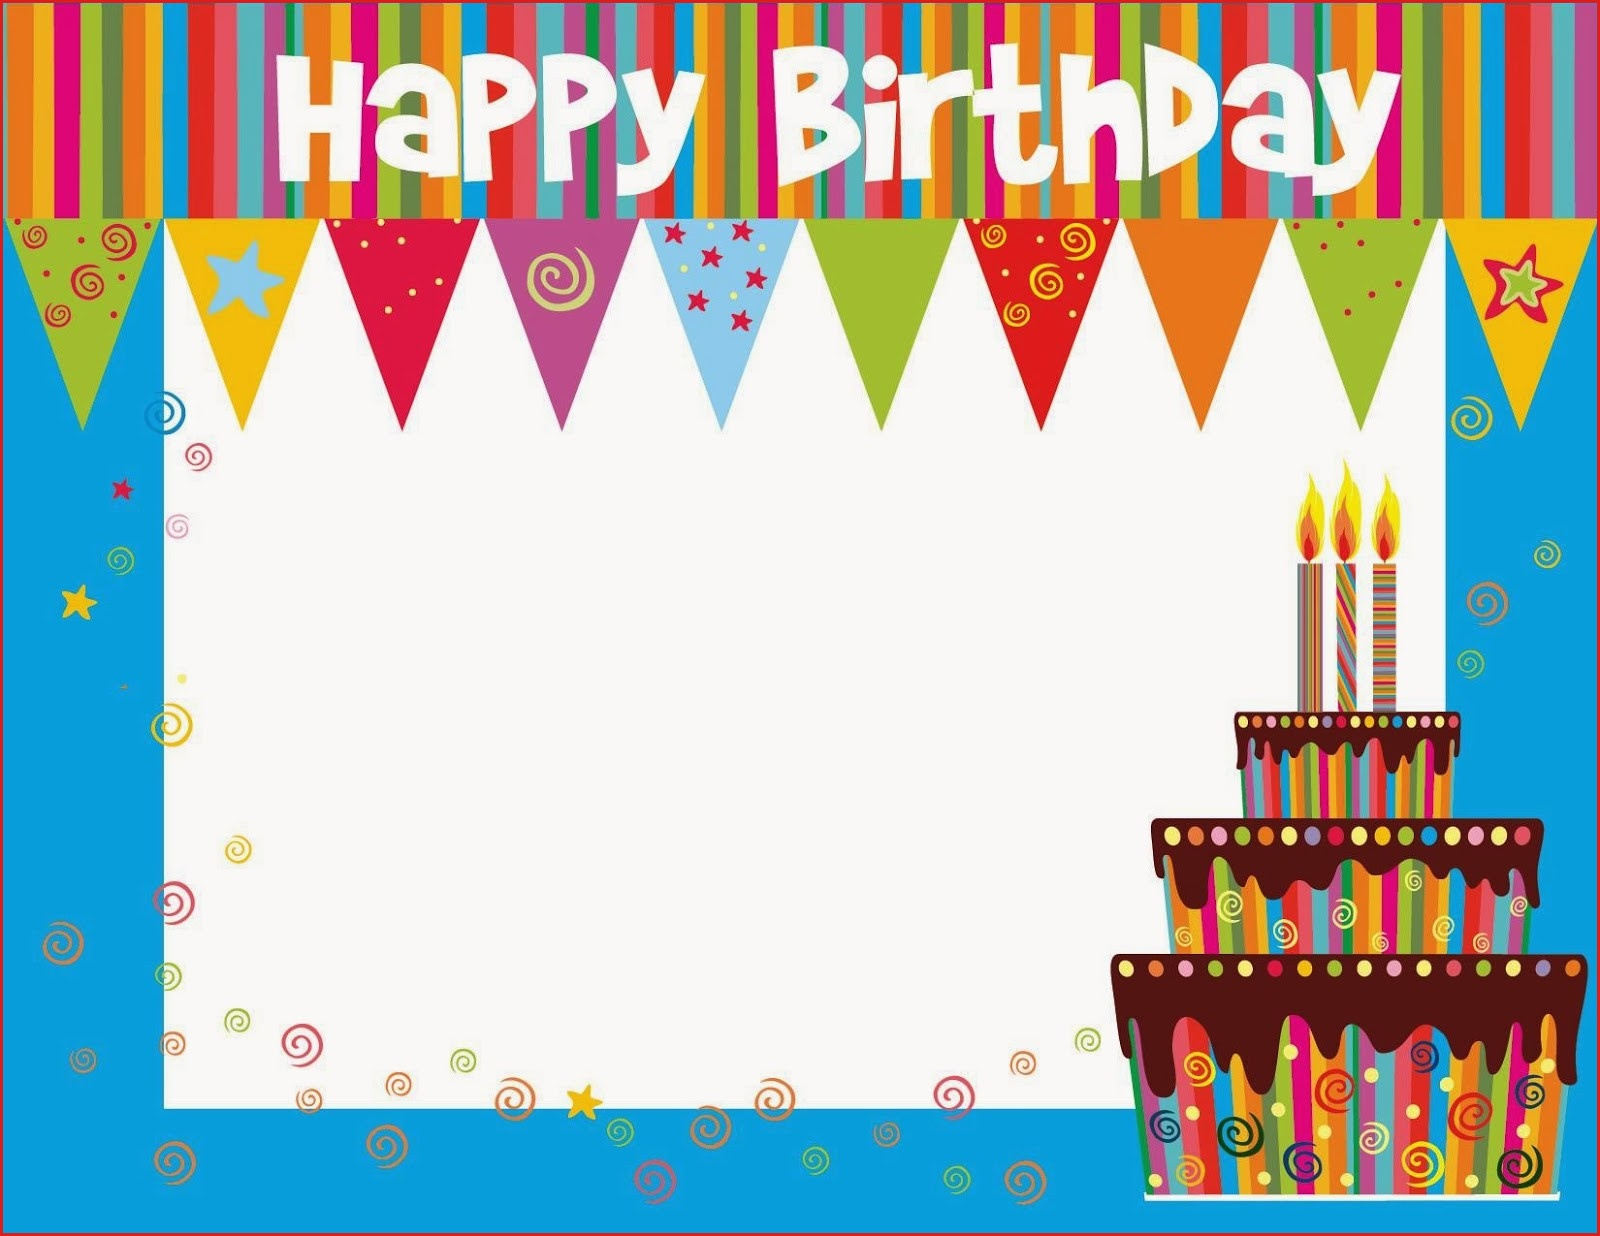 Create Birthday Cards Online Free Printable Birthday Cards Ideas - Free Online Printable Birthday Cards